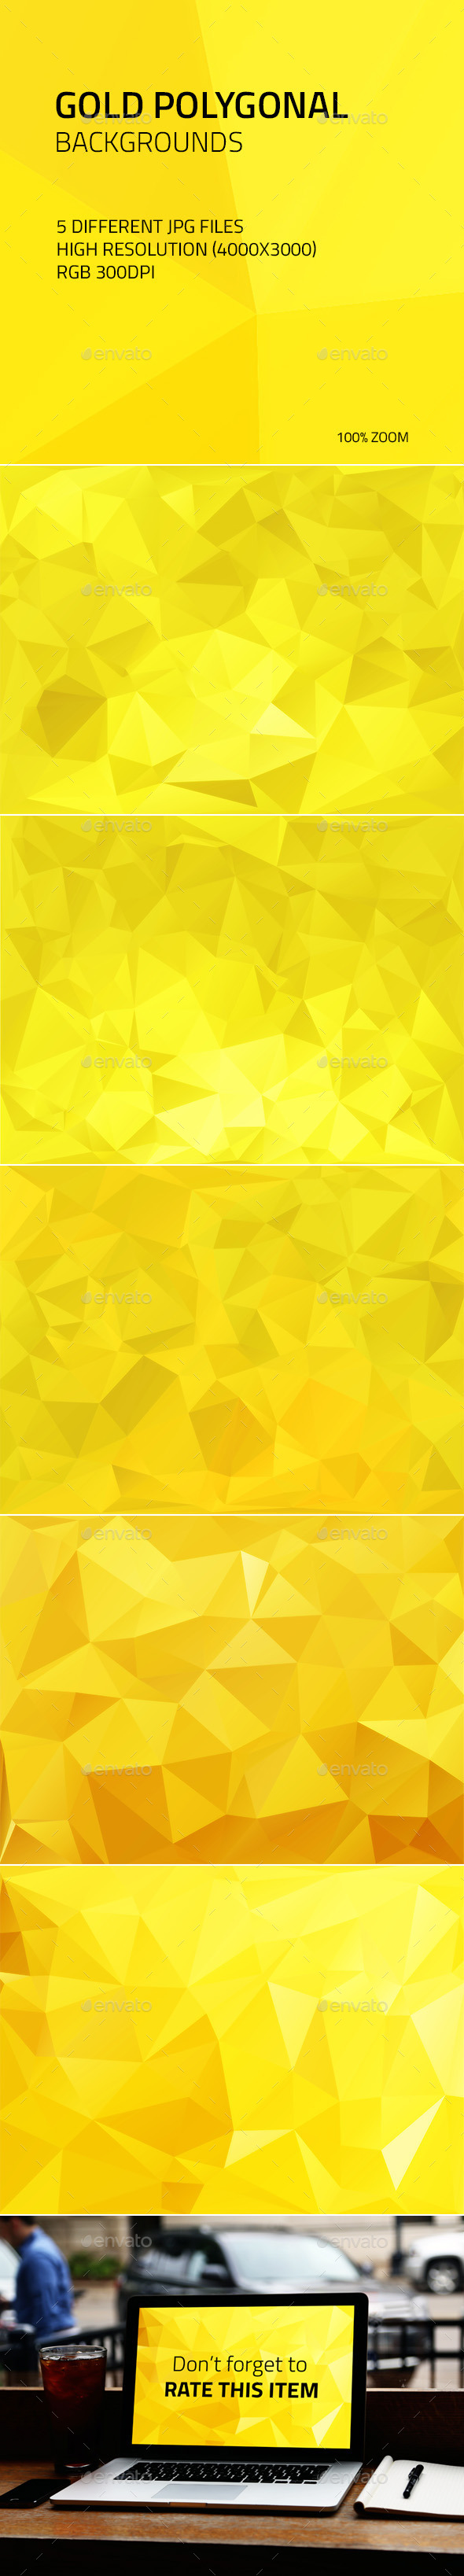 Gold Polygonal Backgrounds - Abstract Backgrounds